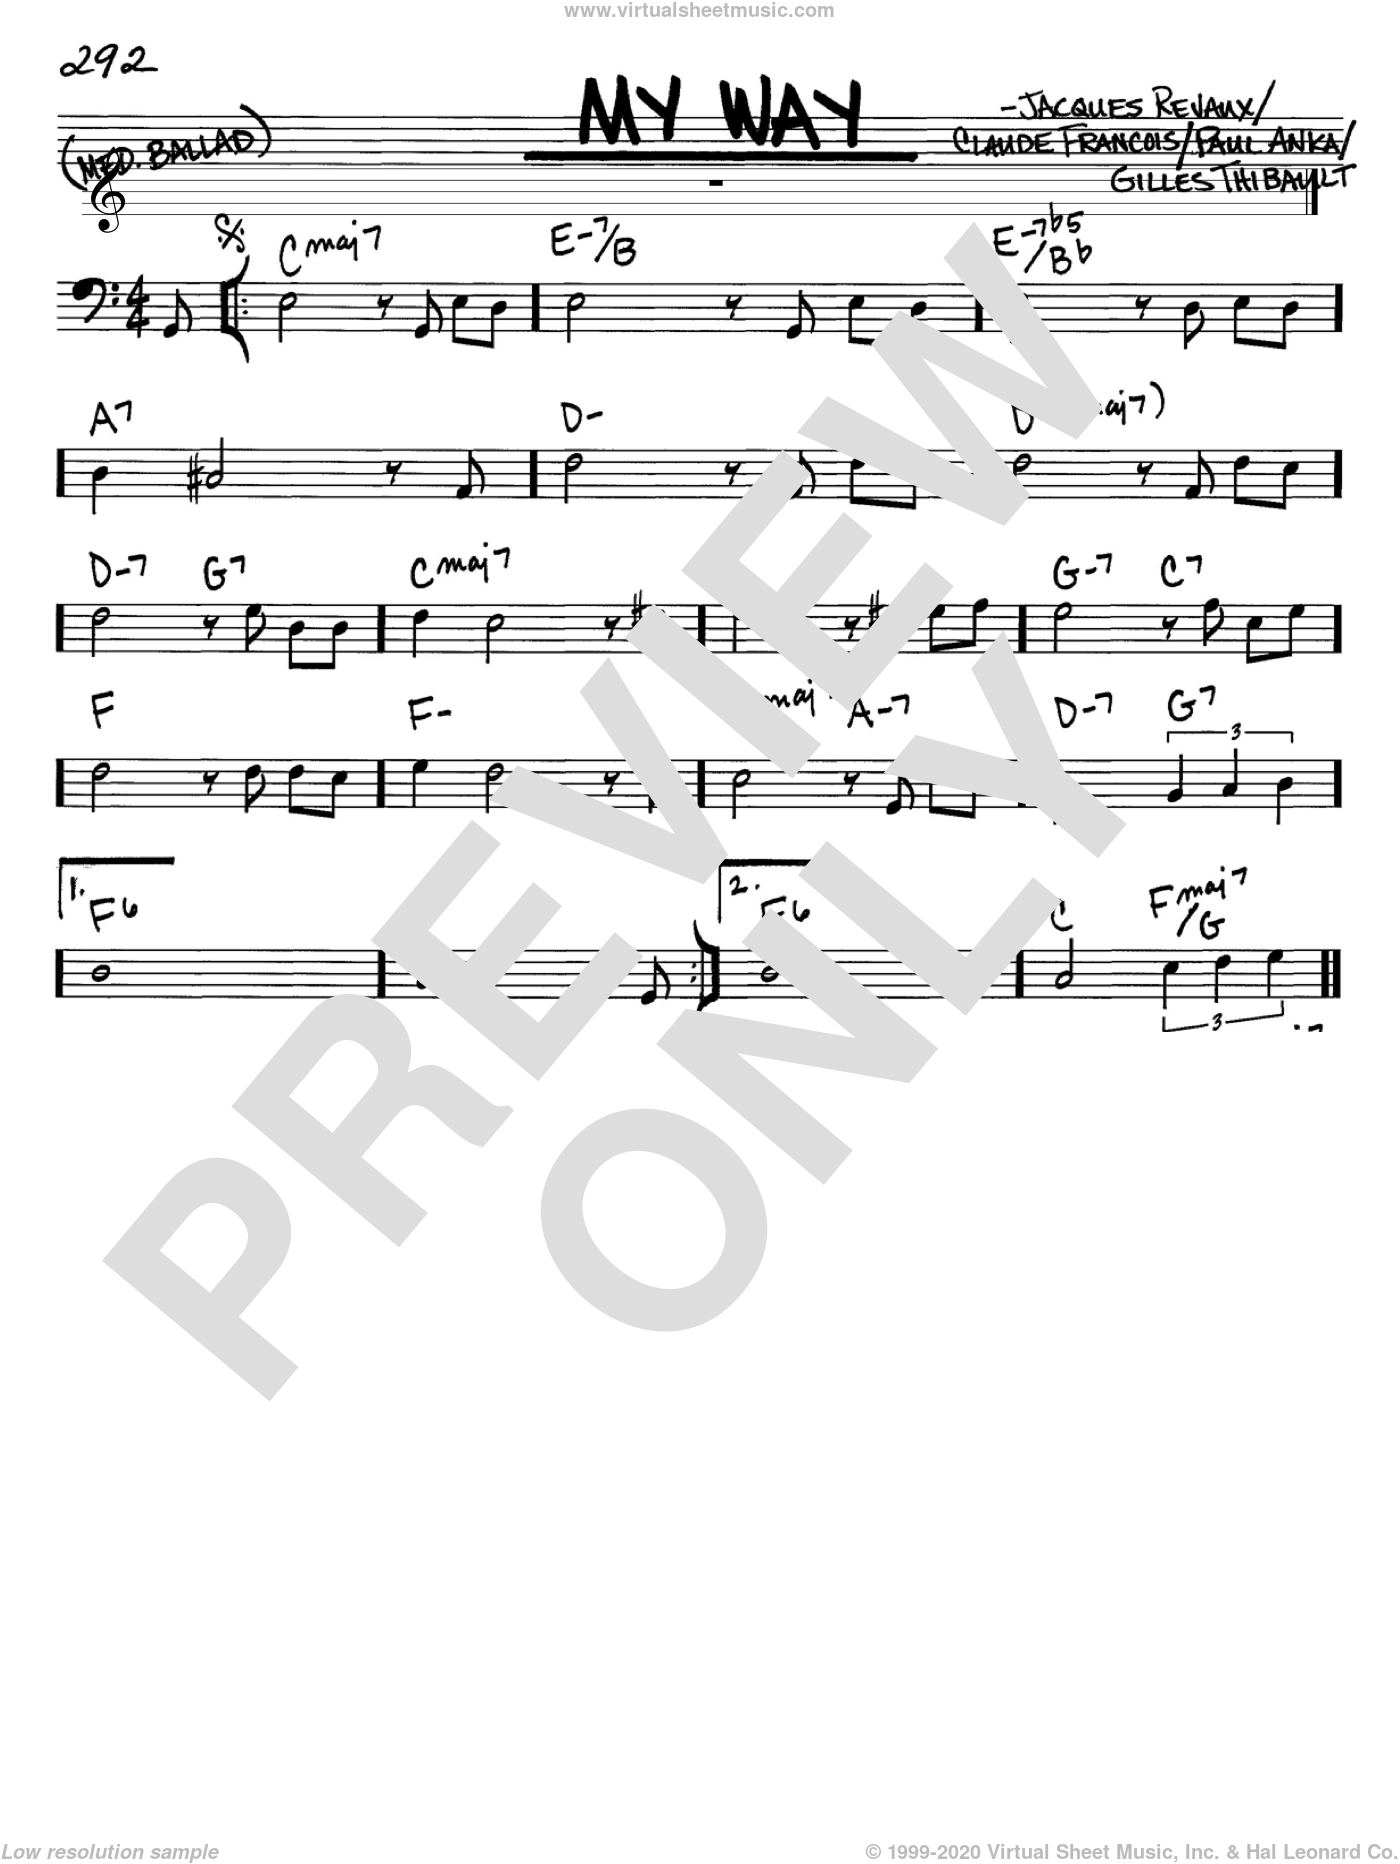 My Way sheet music for voice and other instruments (Bass Clef ) by Jacques Revaux, Elvis Presley, Frank Sinatra, Claude Francois and Paul Anka. Score Image Preview.